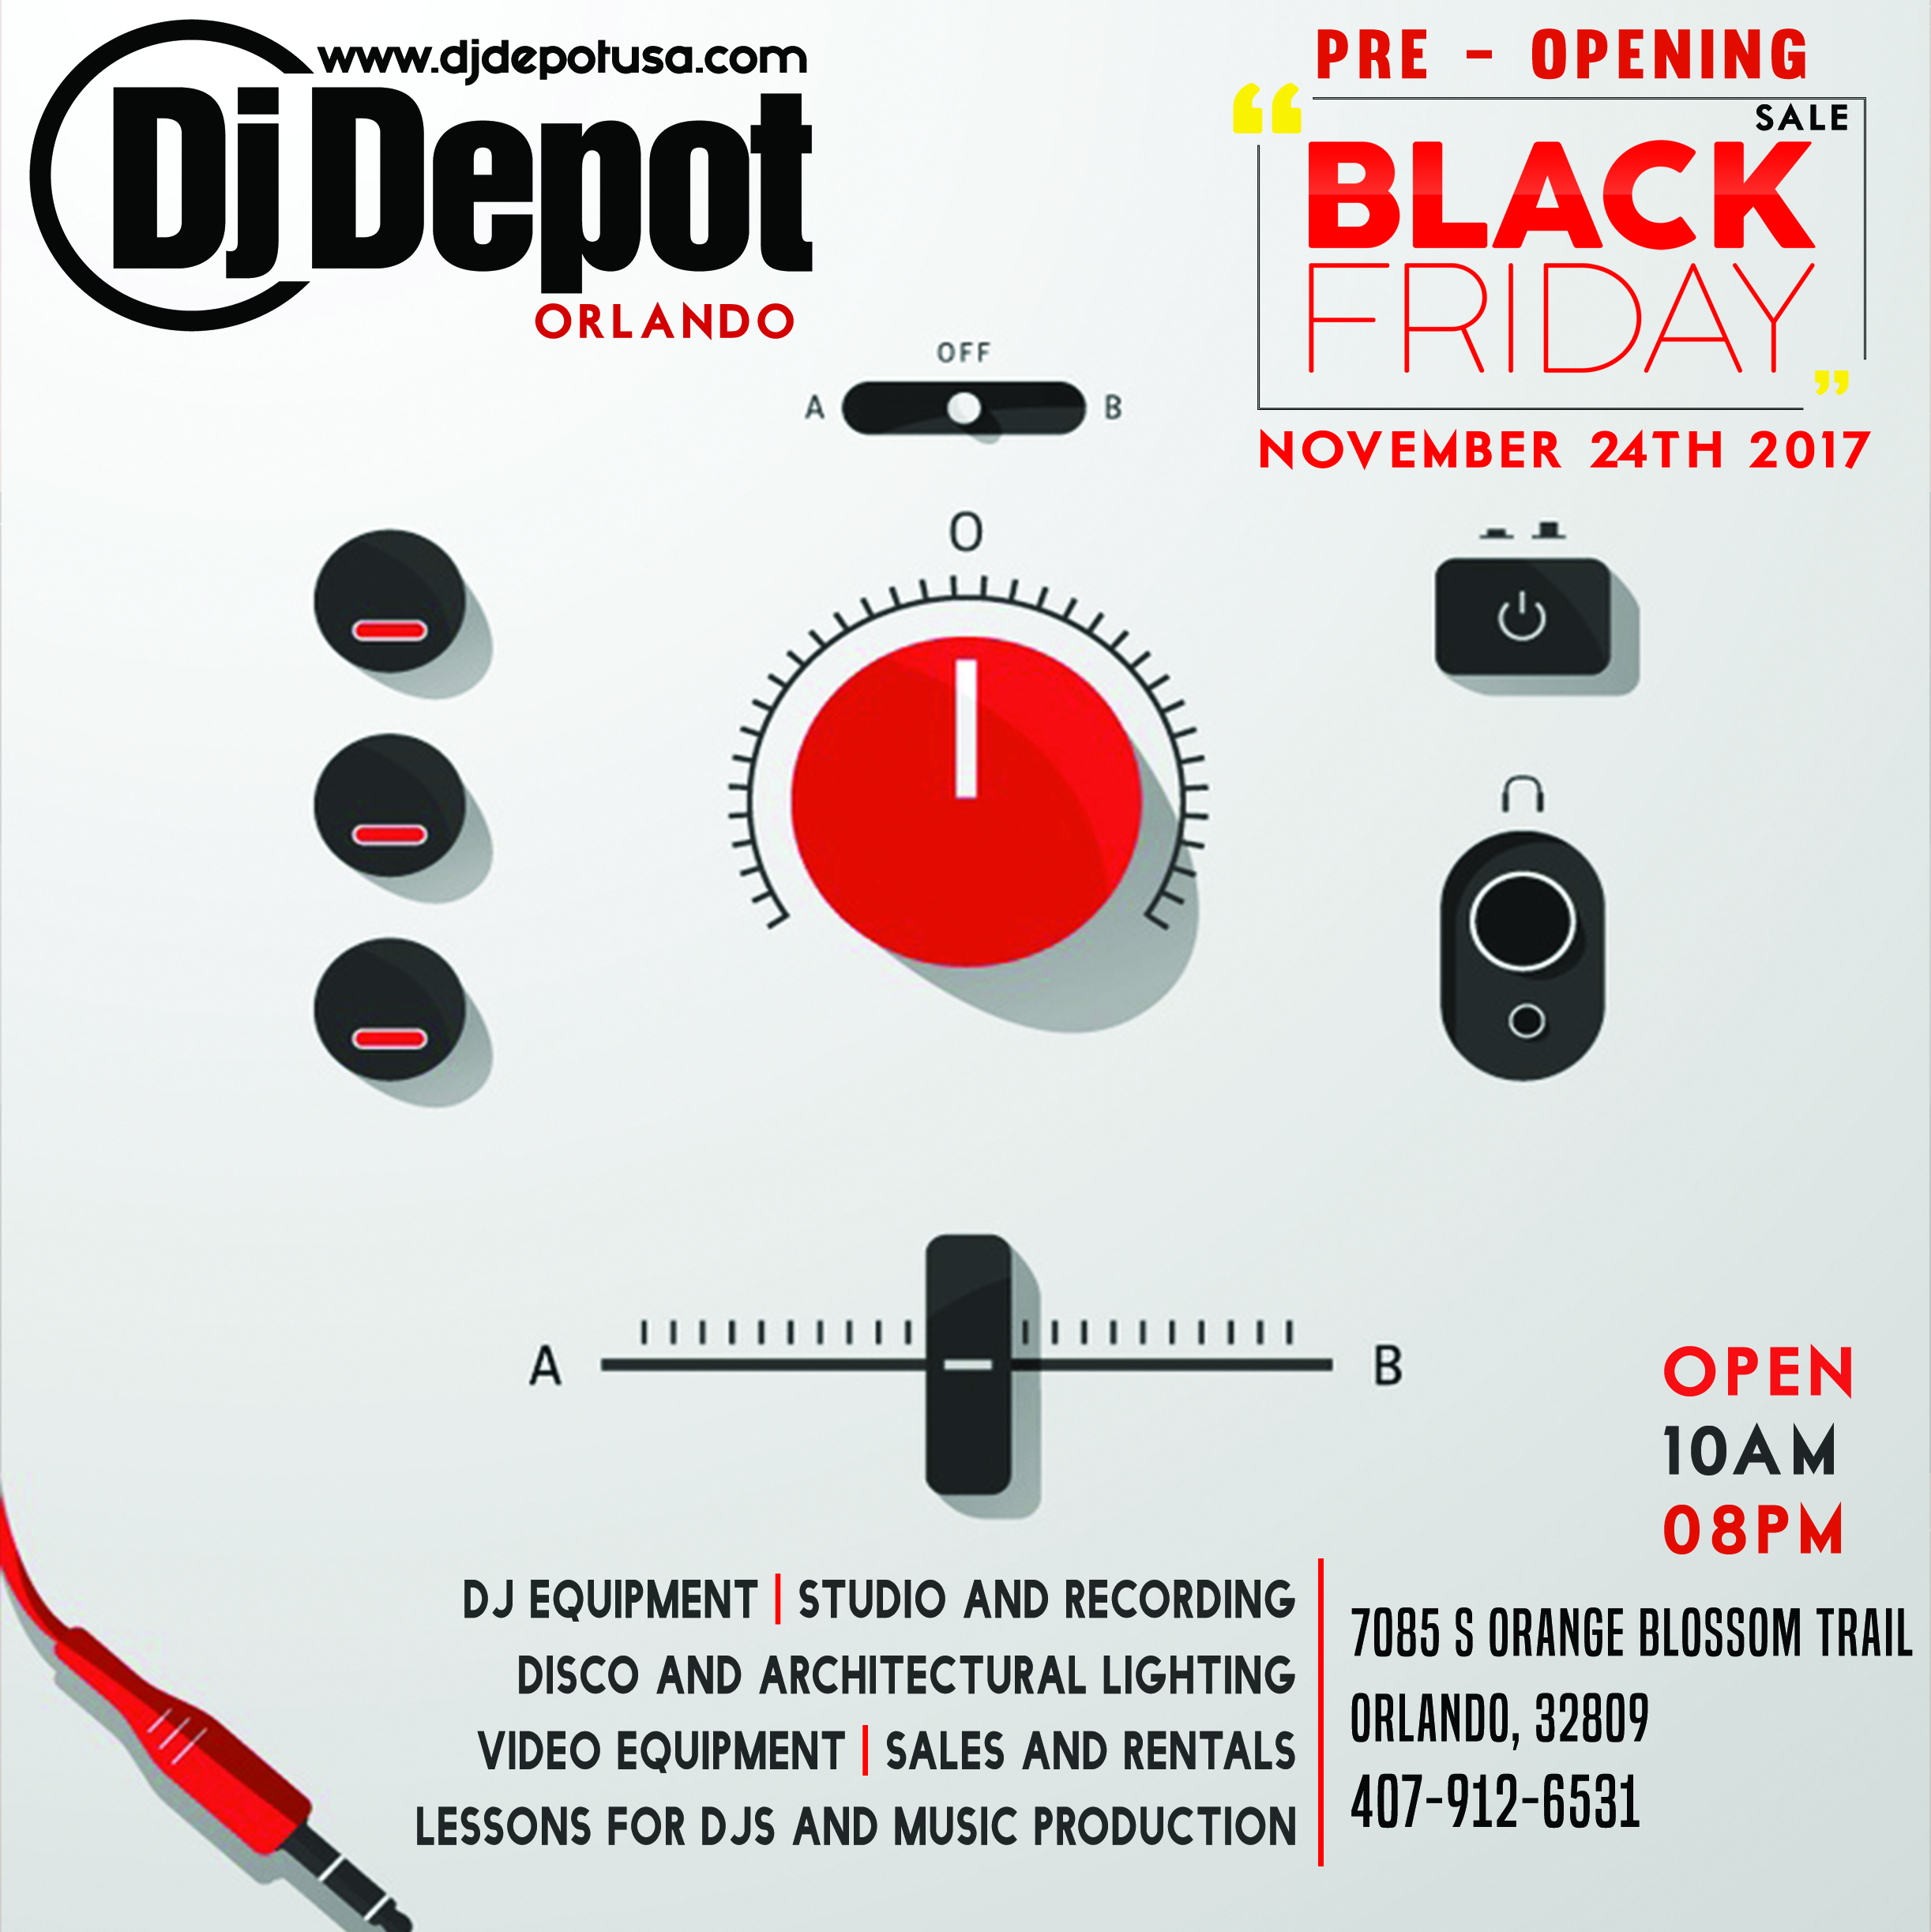 dj depot black friday 5.jpg